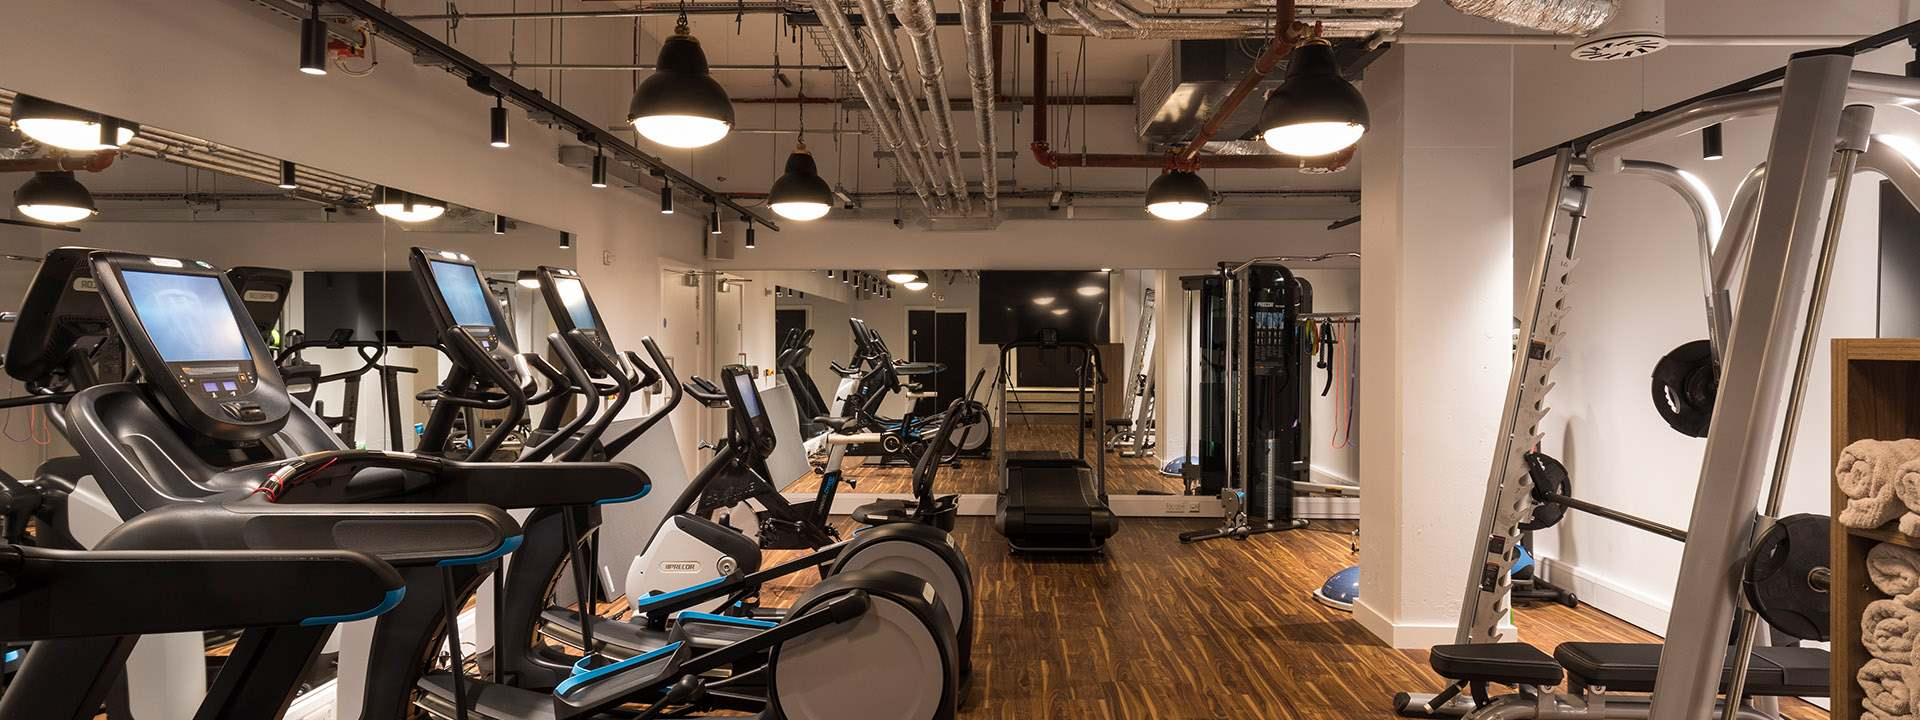 Sw fitness u private reformer pilates classes westminster london sw